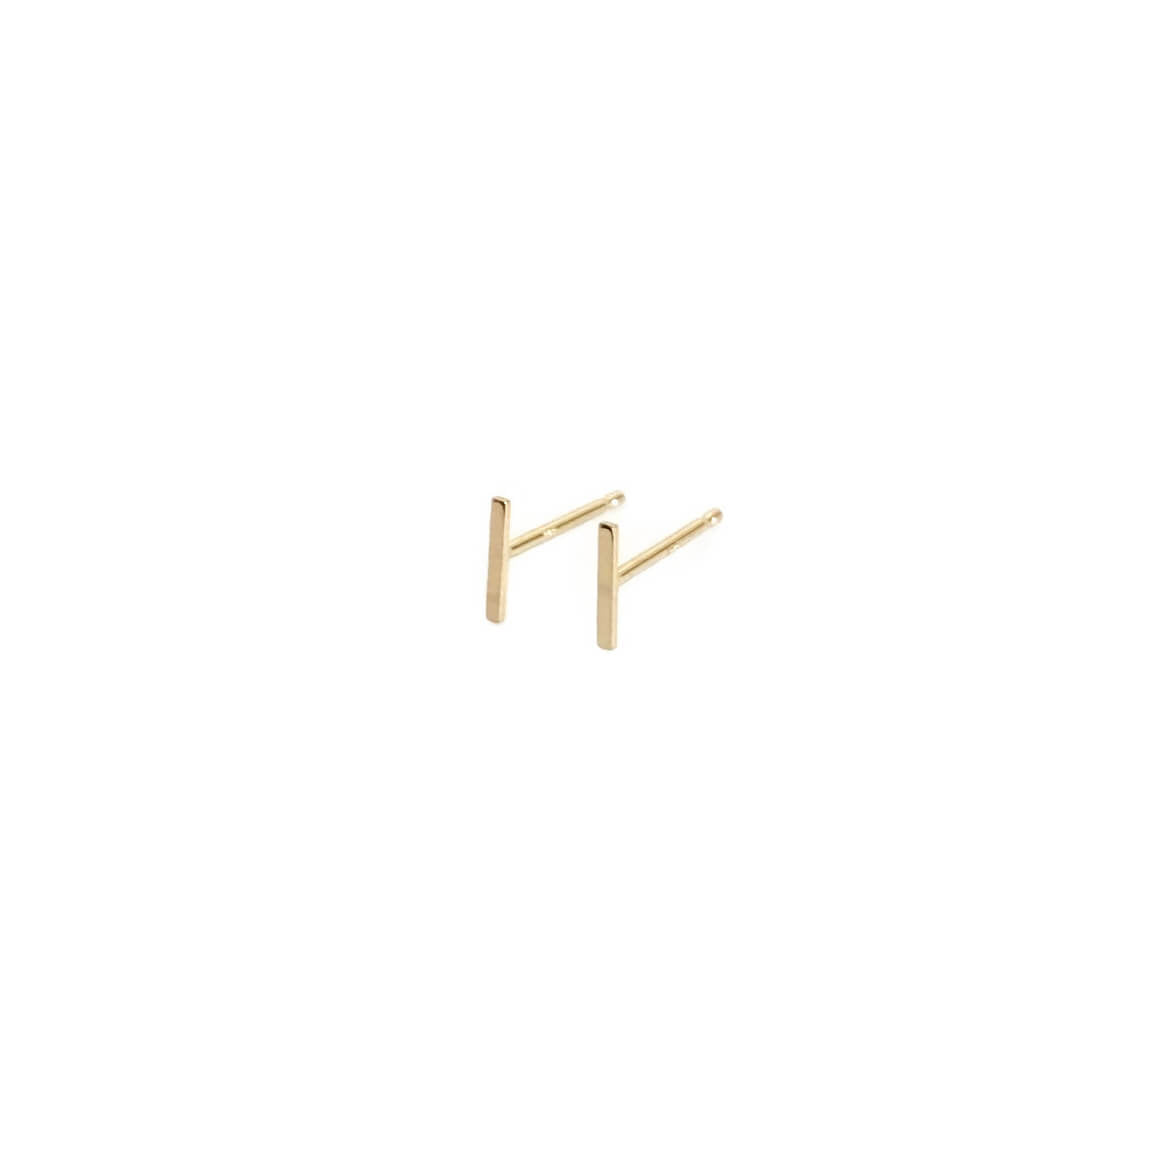 14k solid gold bar earrings are dainty and made of real 14k gold.  It's a gold bar stud earrings that come in pair for pierced ears.